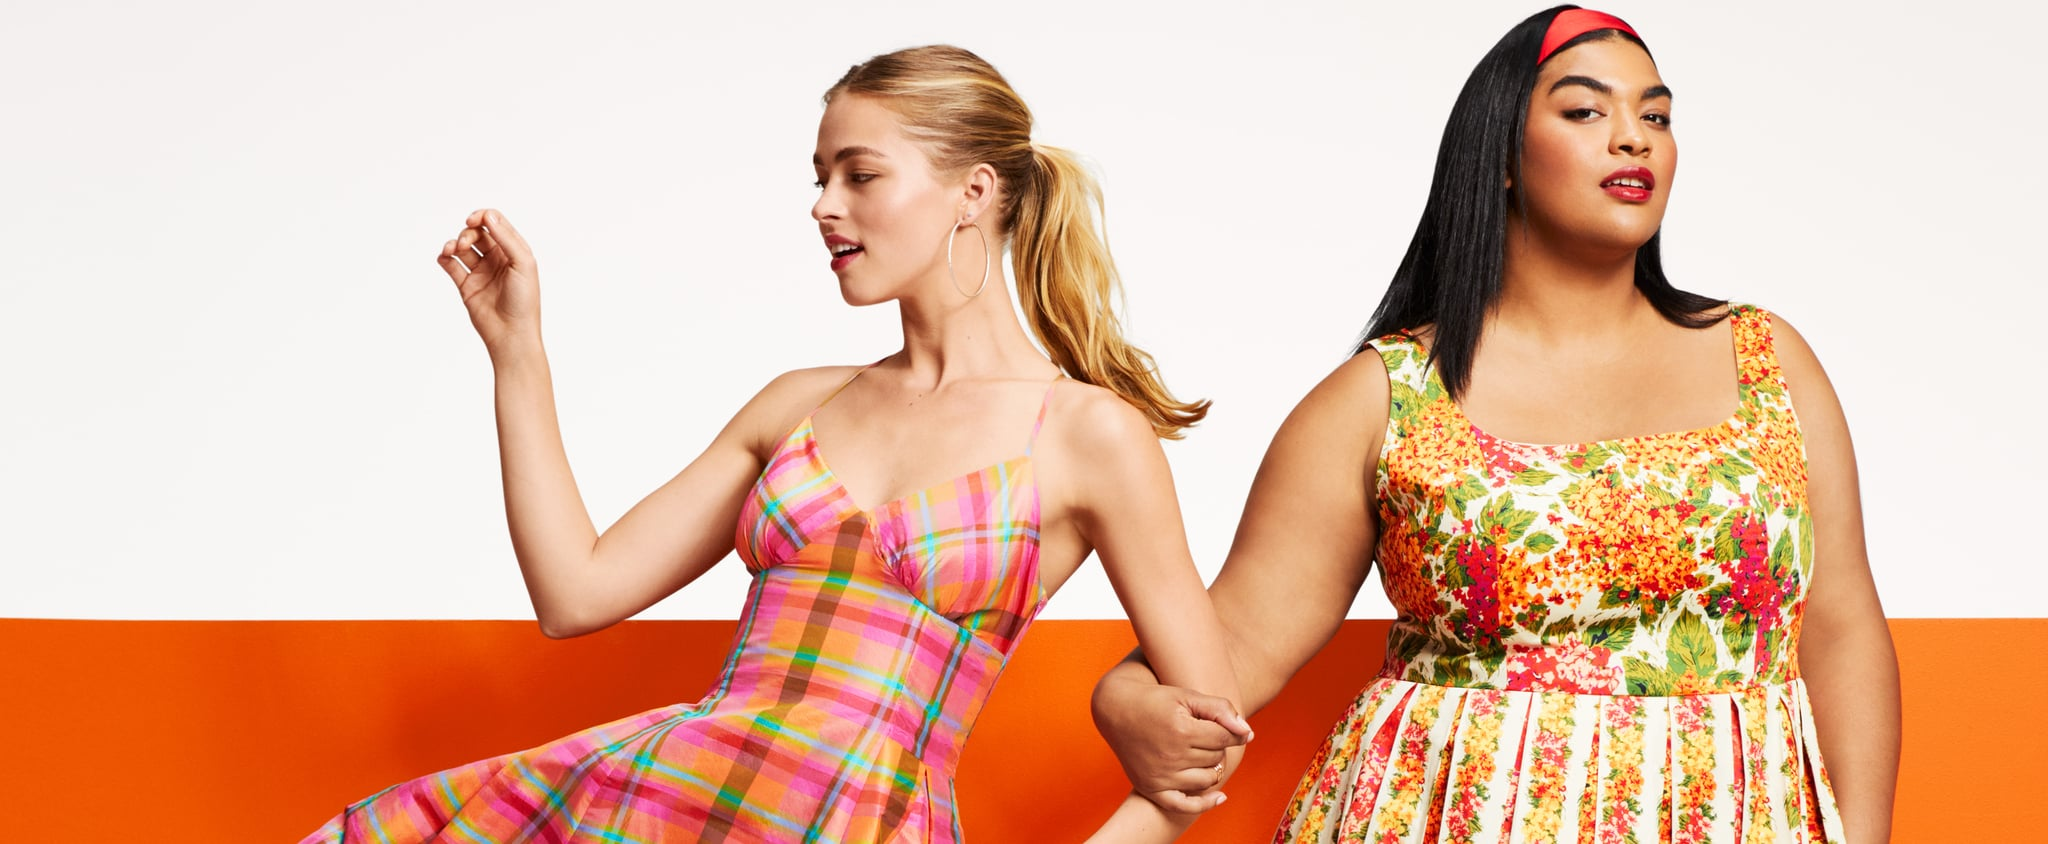 Target's 20th Anniversary Collection Lookbook Pictures 2019